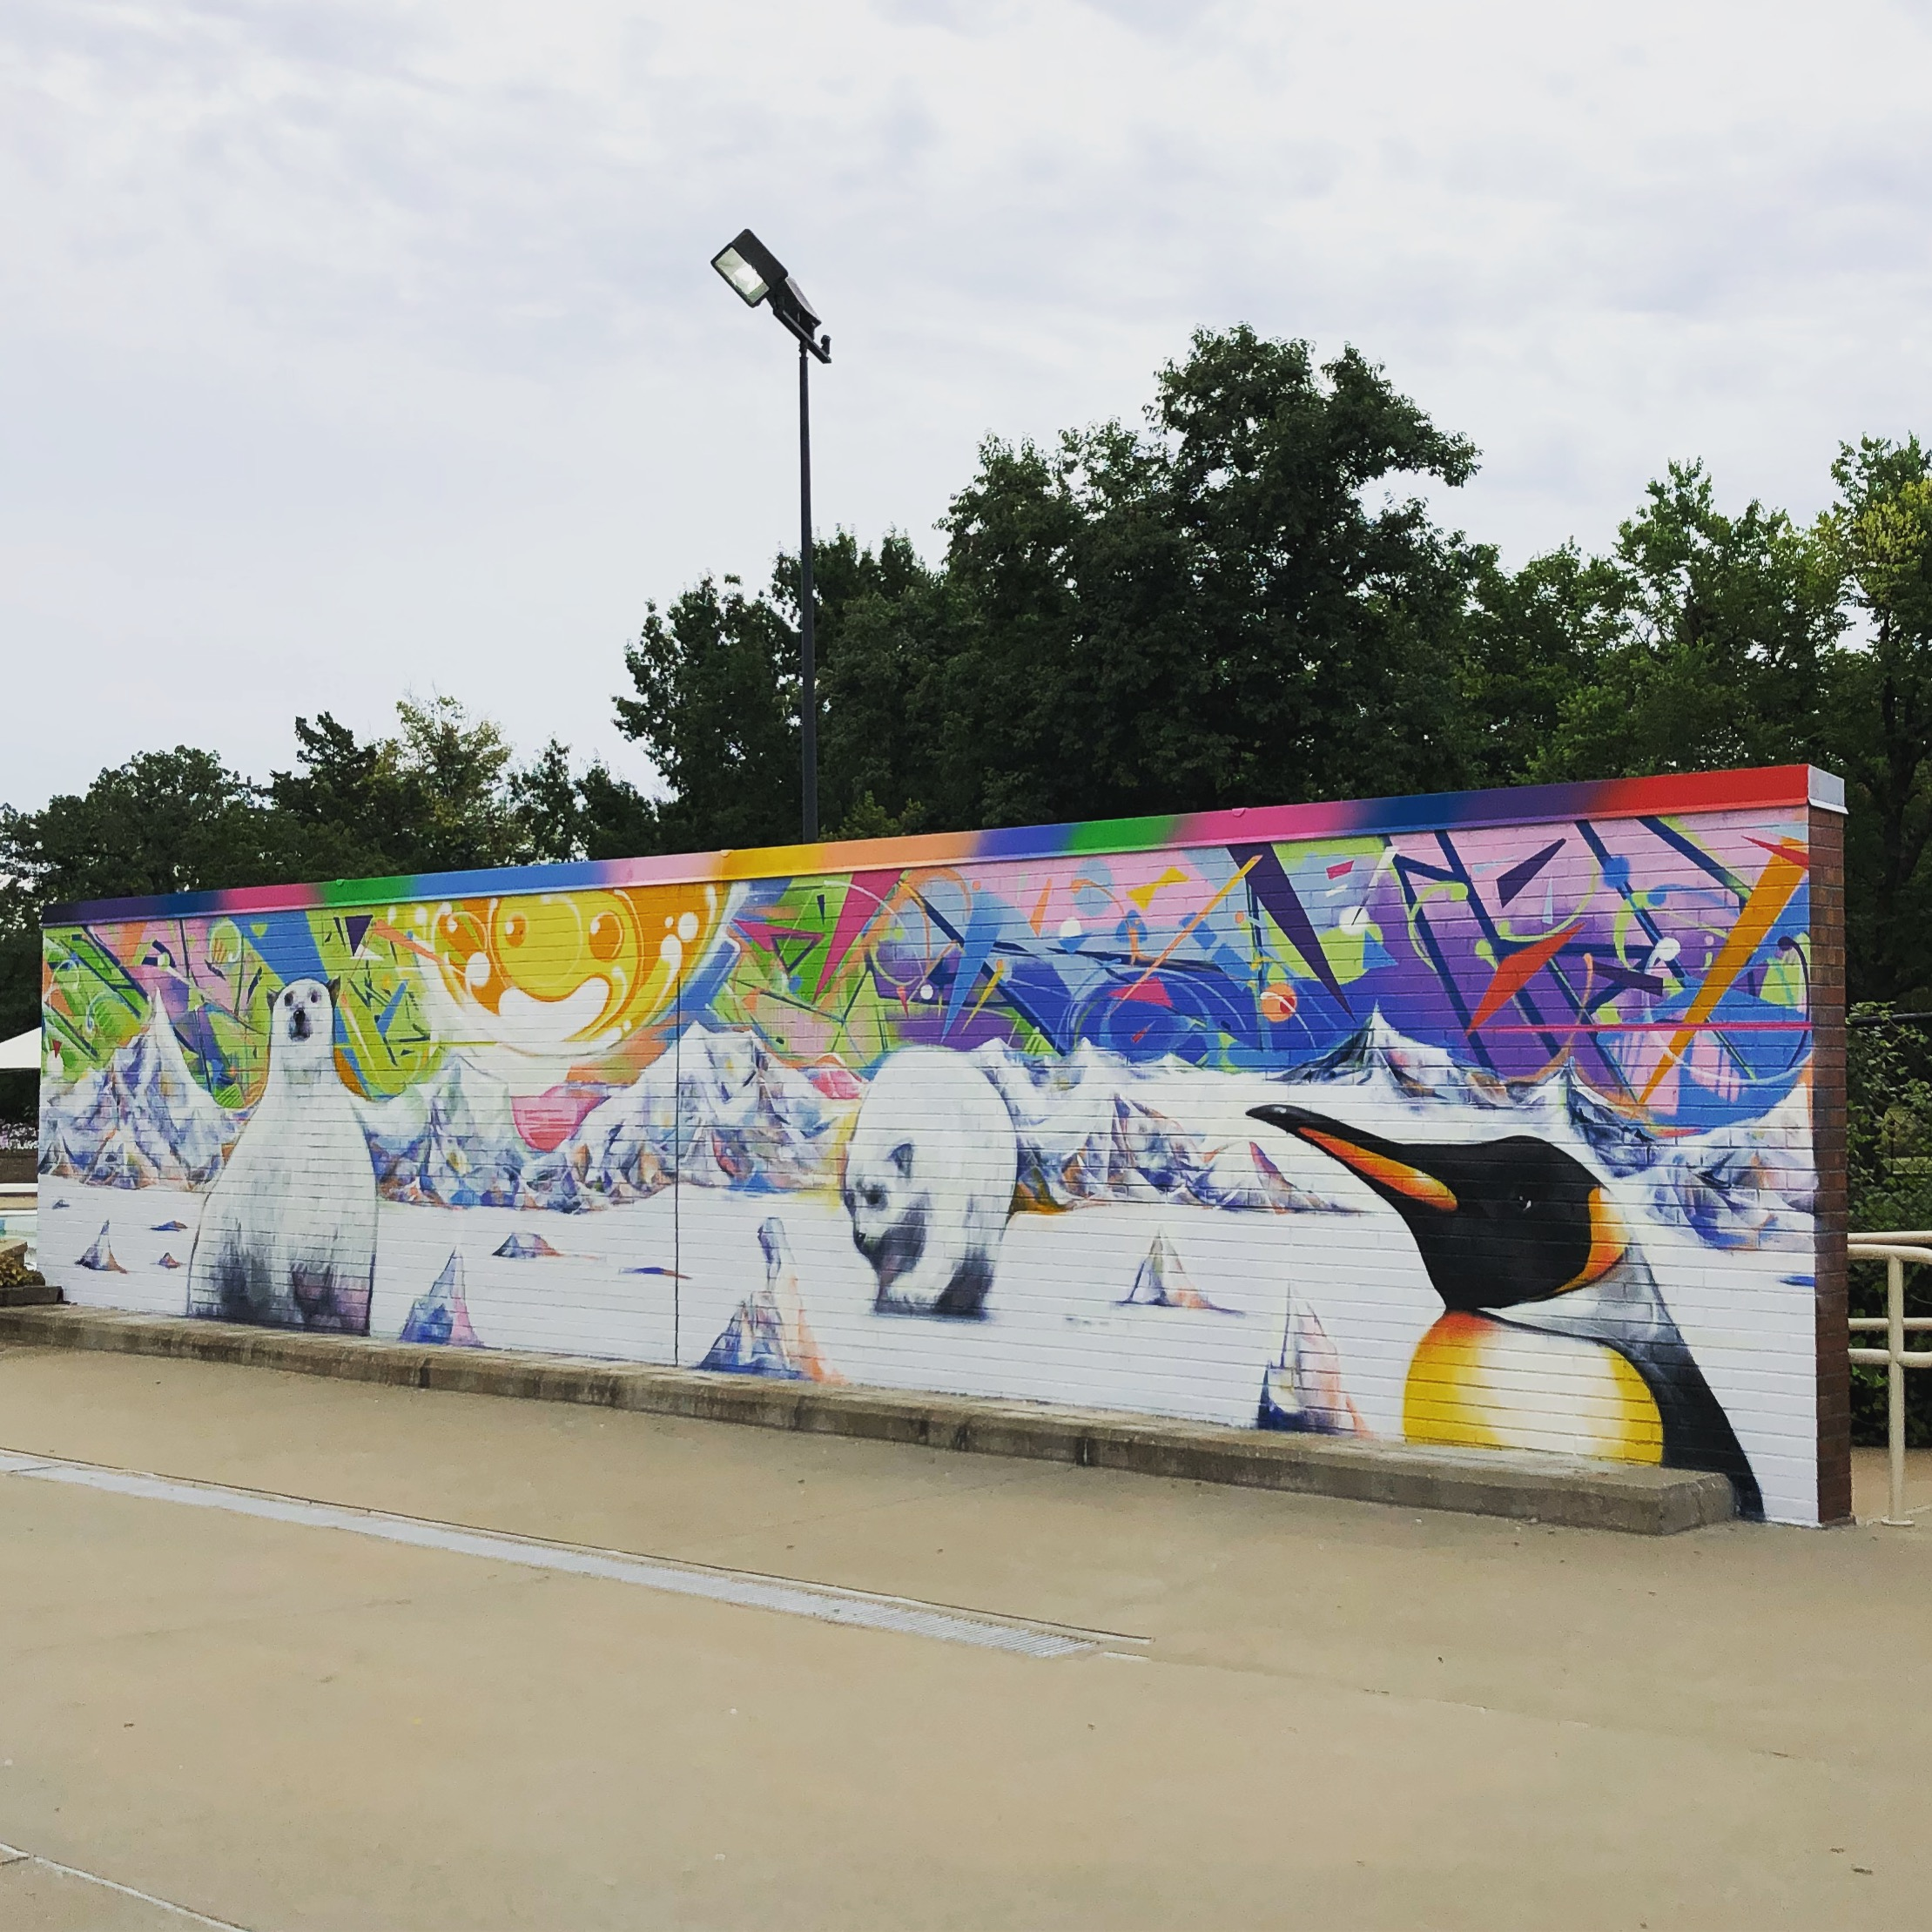 BLAISDELL POOL GAGE PARK - Painted by artists Luke Rocha & Patrick Rocha, Jr. in the summer of 2018.